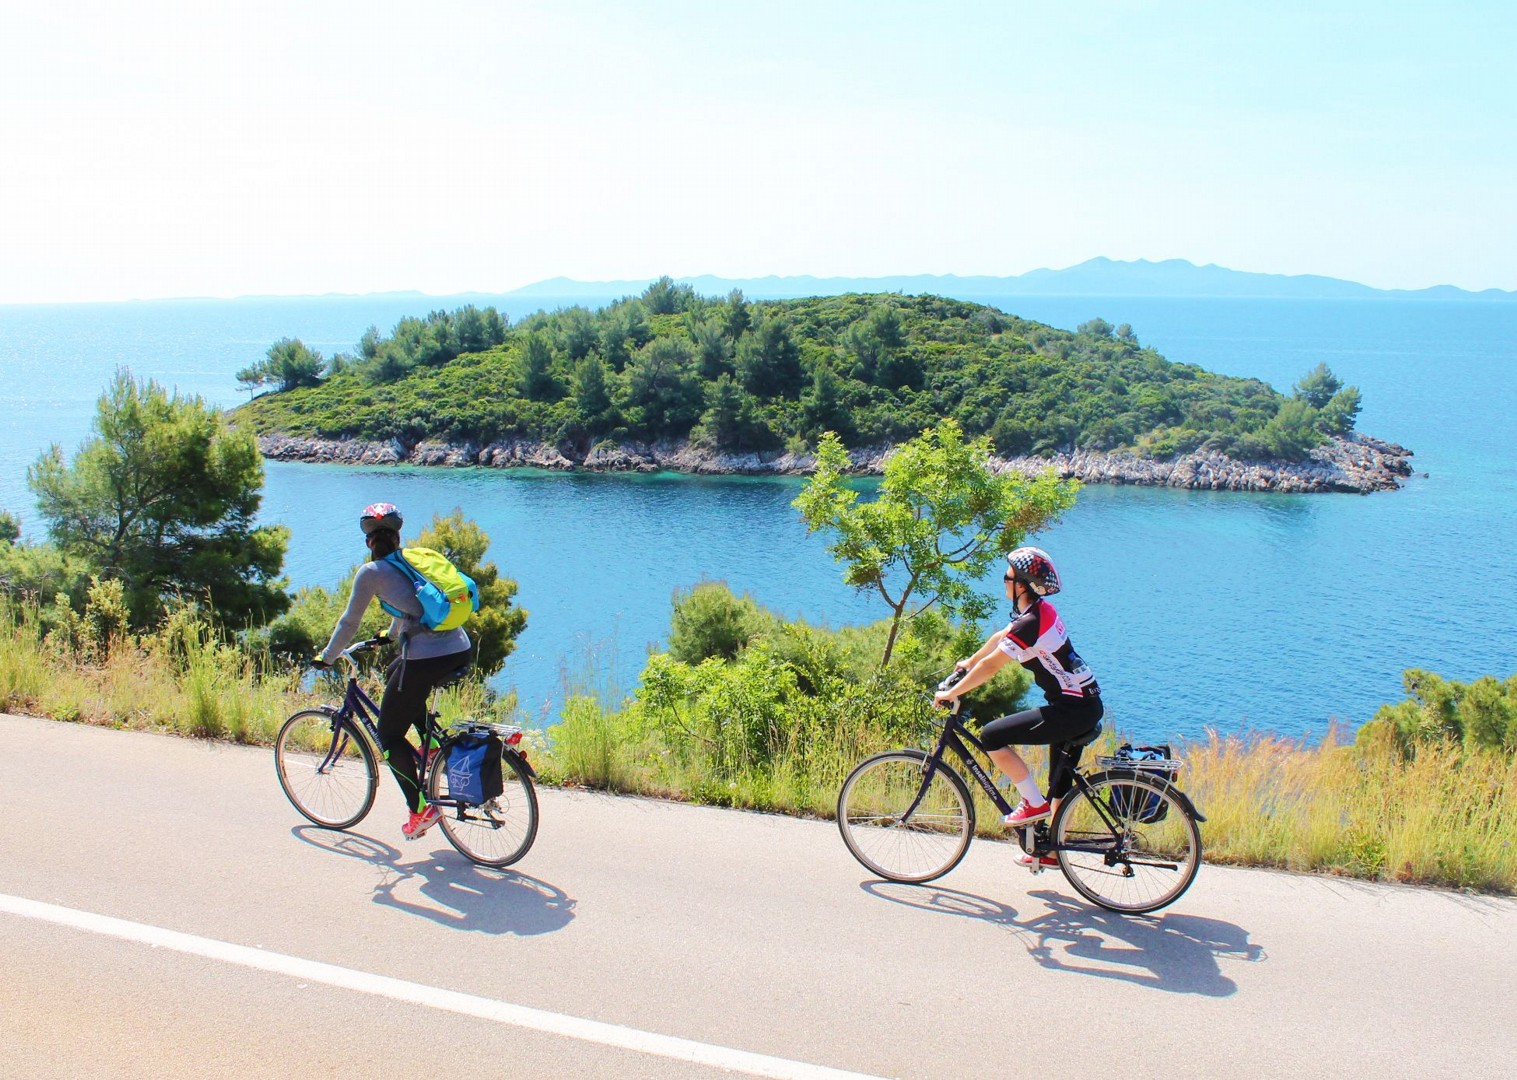 bike-and-boat-cycling-adventure-along-dalmation-coast.jpg - Croatia - Dalmatian National Parks and Islands - Bike and Boat Holiday - Leisure Cycling